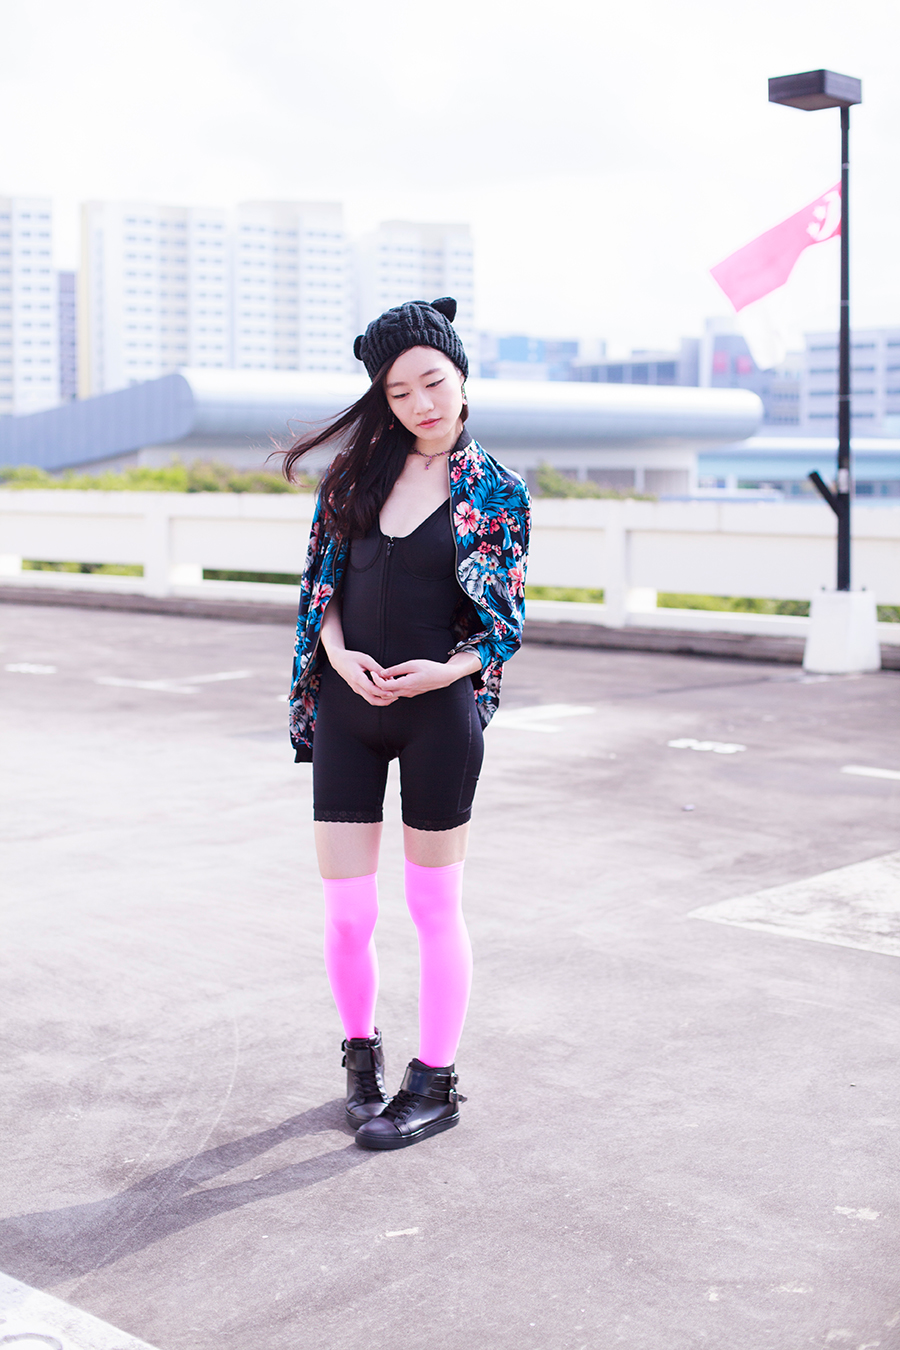 Cat outfit: Vedette Shapewear Celeste black onepiece shaper, Newdress blue floral jacket, We Love Colors neon pink thigh high stockings, DressLink black cat ear beanie, Zalora black high top PU sneakers, Paris Kids rose pink necklace, Vintage pink rock earrings.